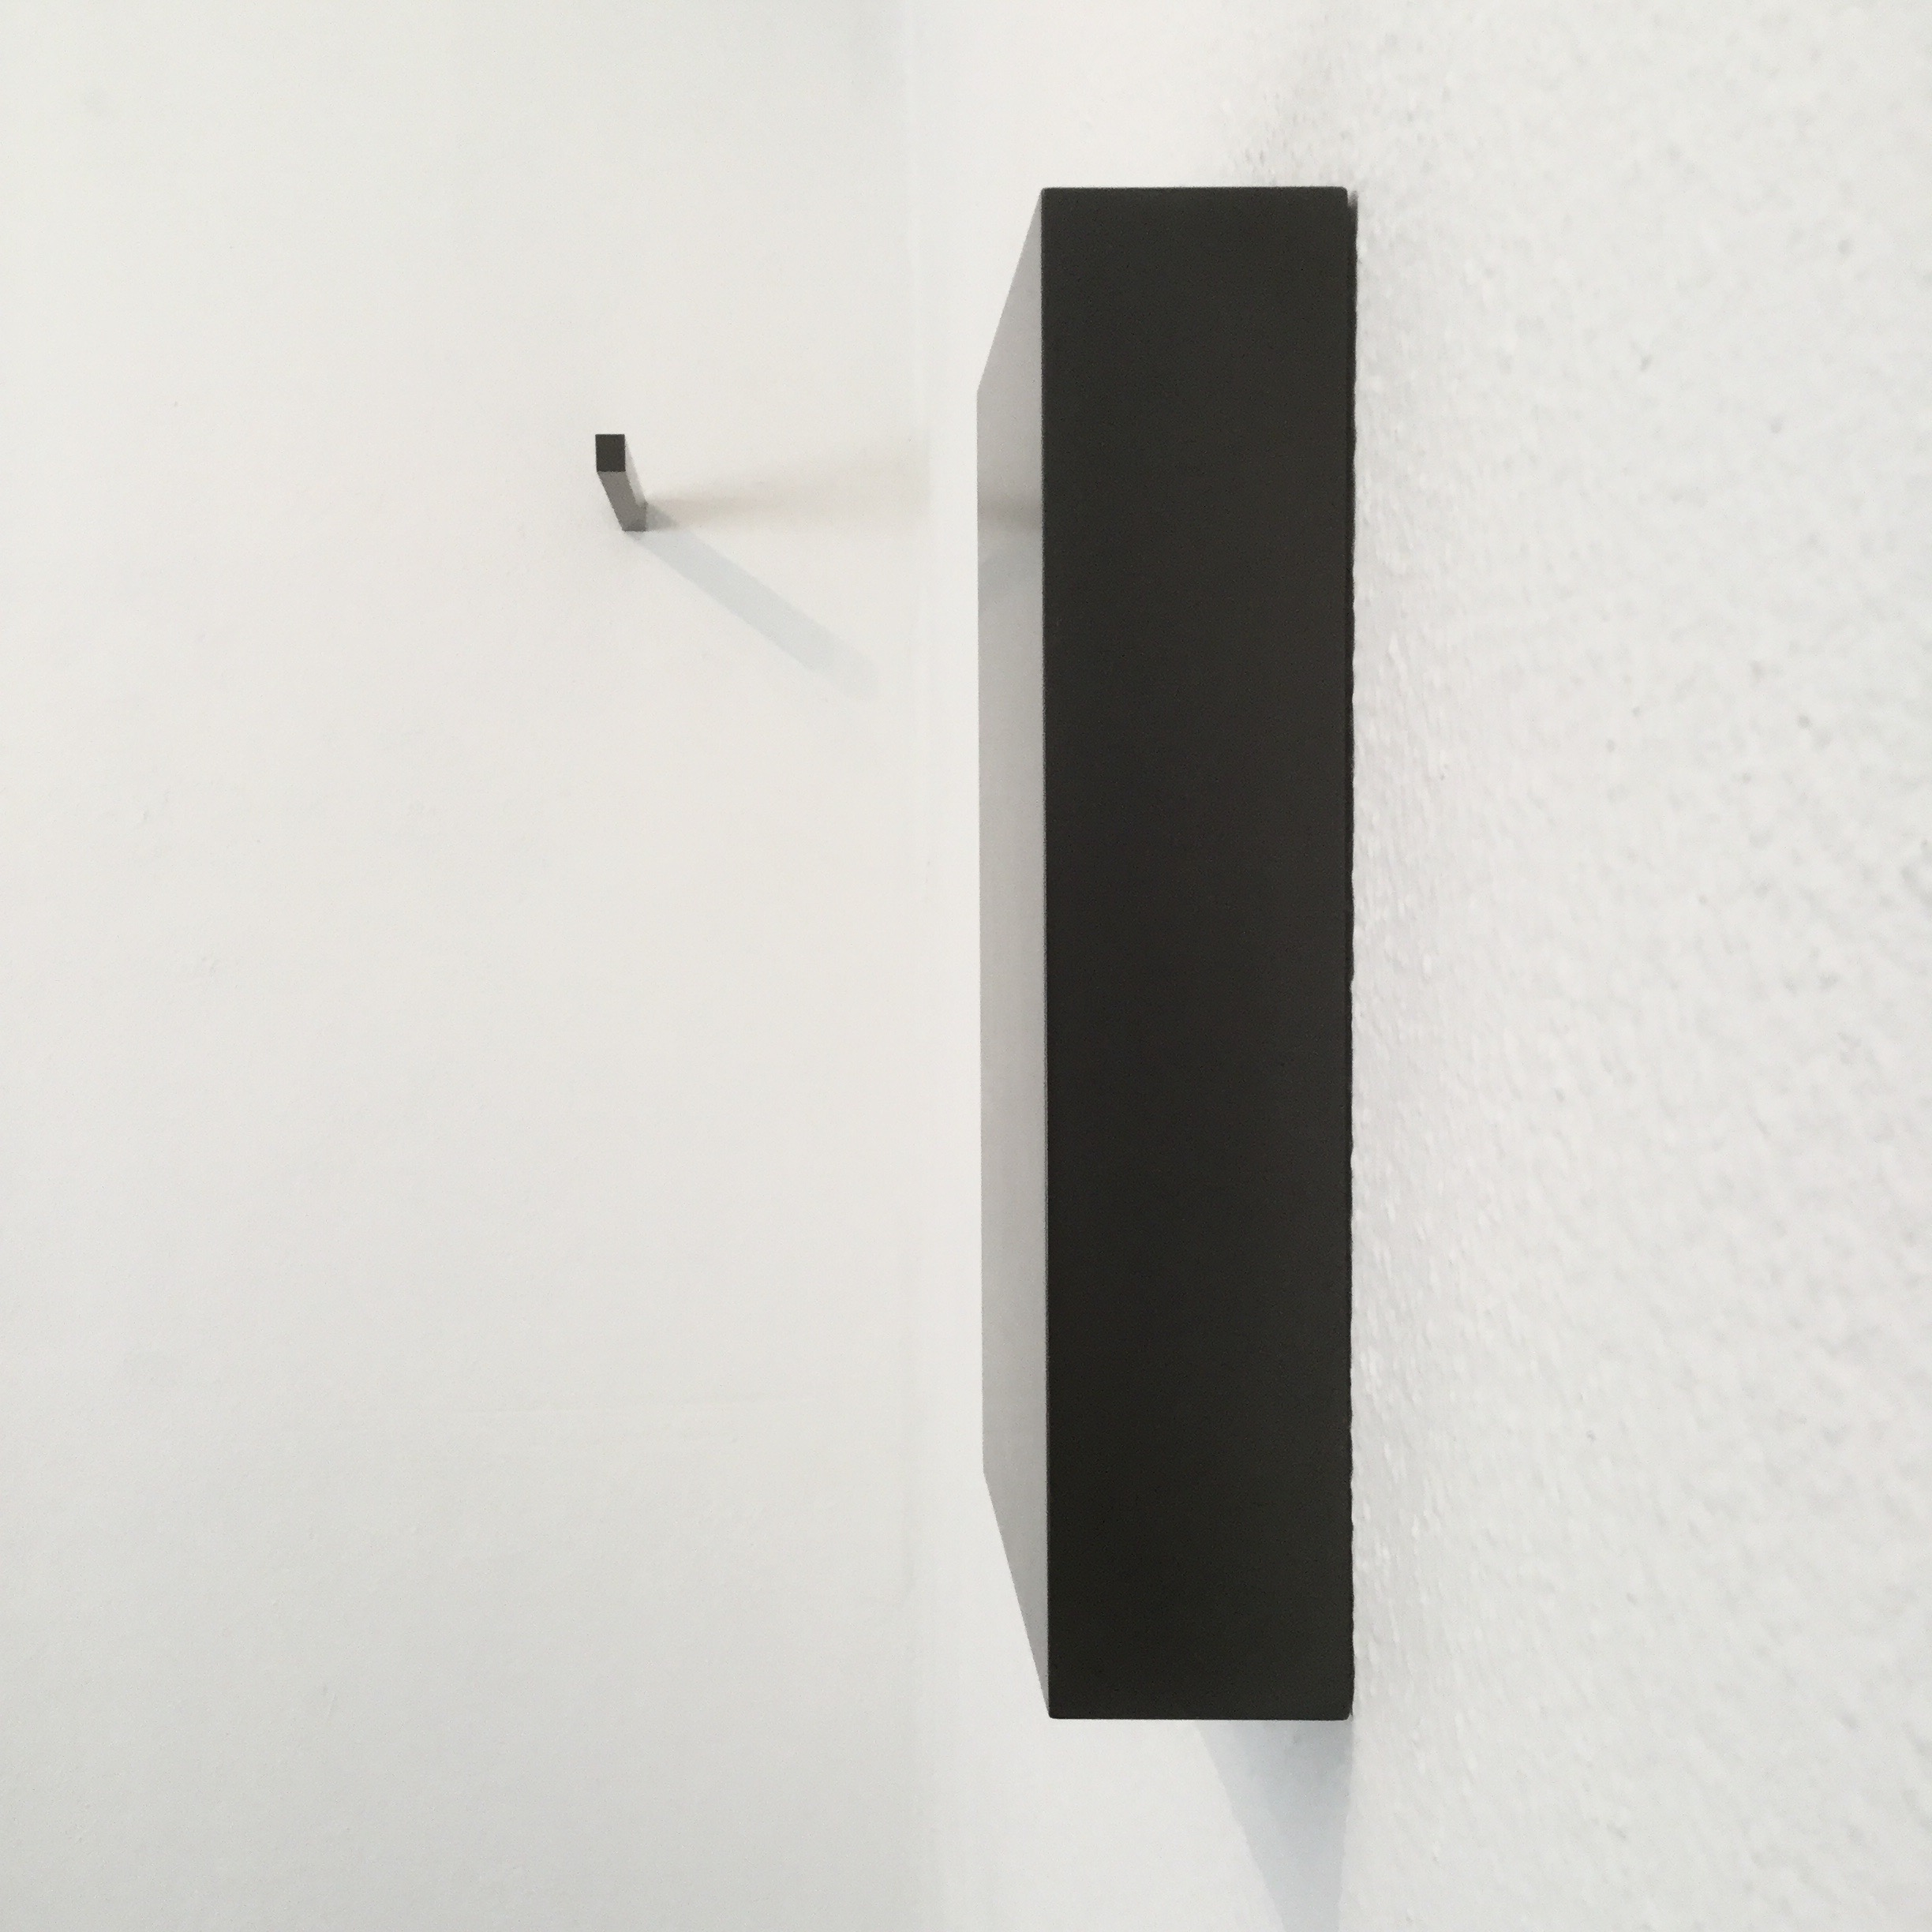 exhibitions 2d, 2015 (installation view)  Dimensions variable, Solid graphite